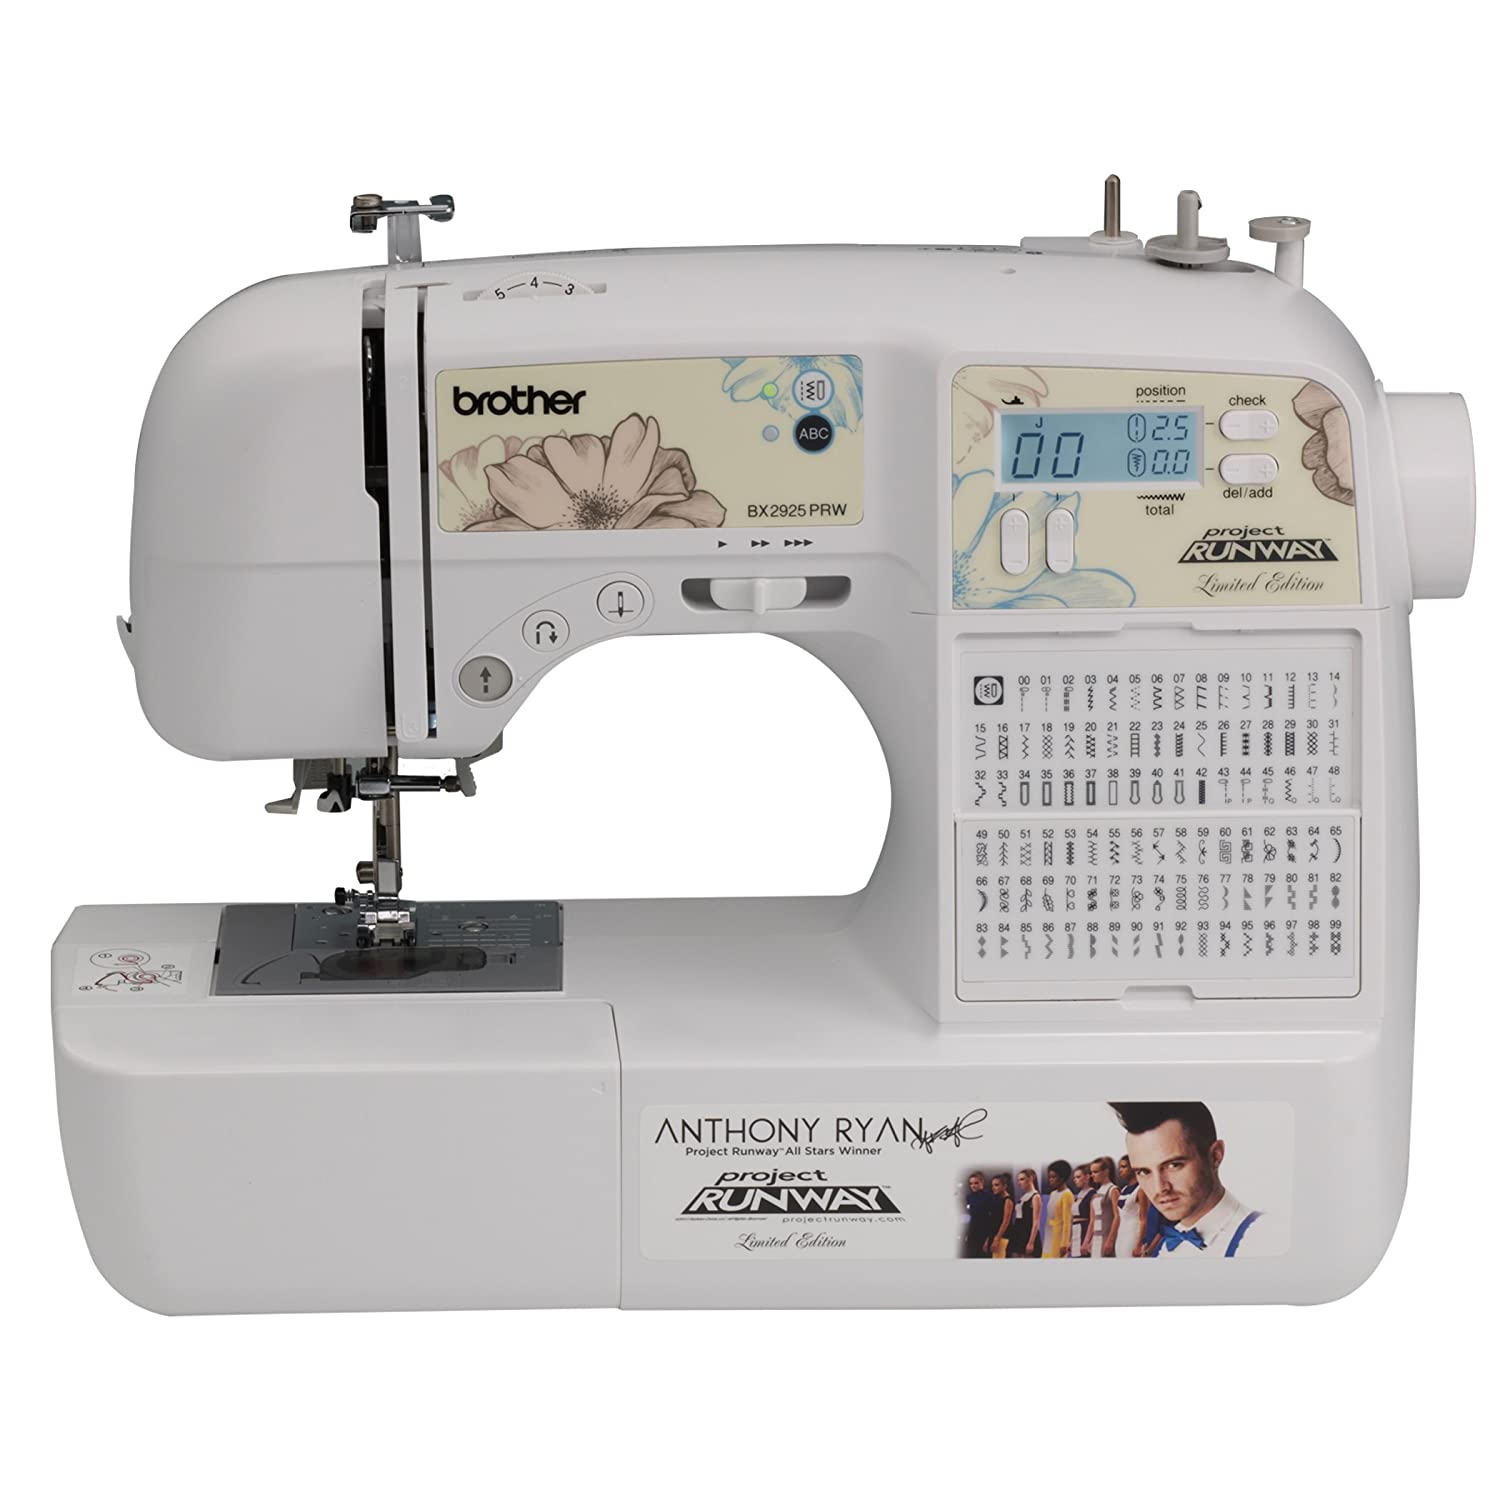 Brother BX2925PRW Limited Edition Project Runway Sewing Machine